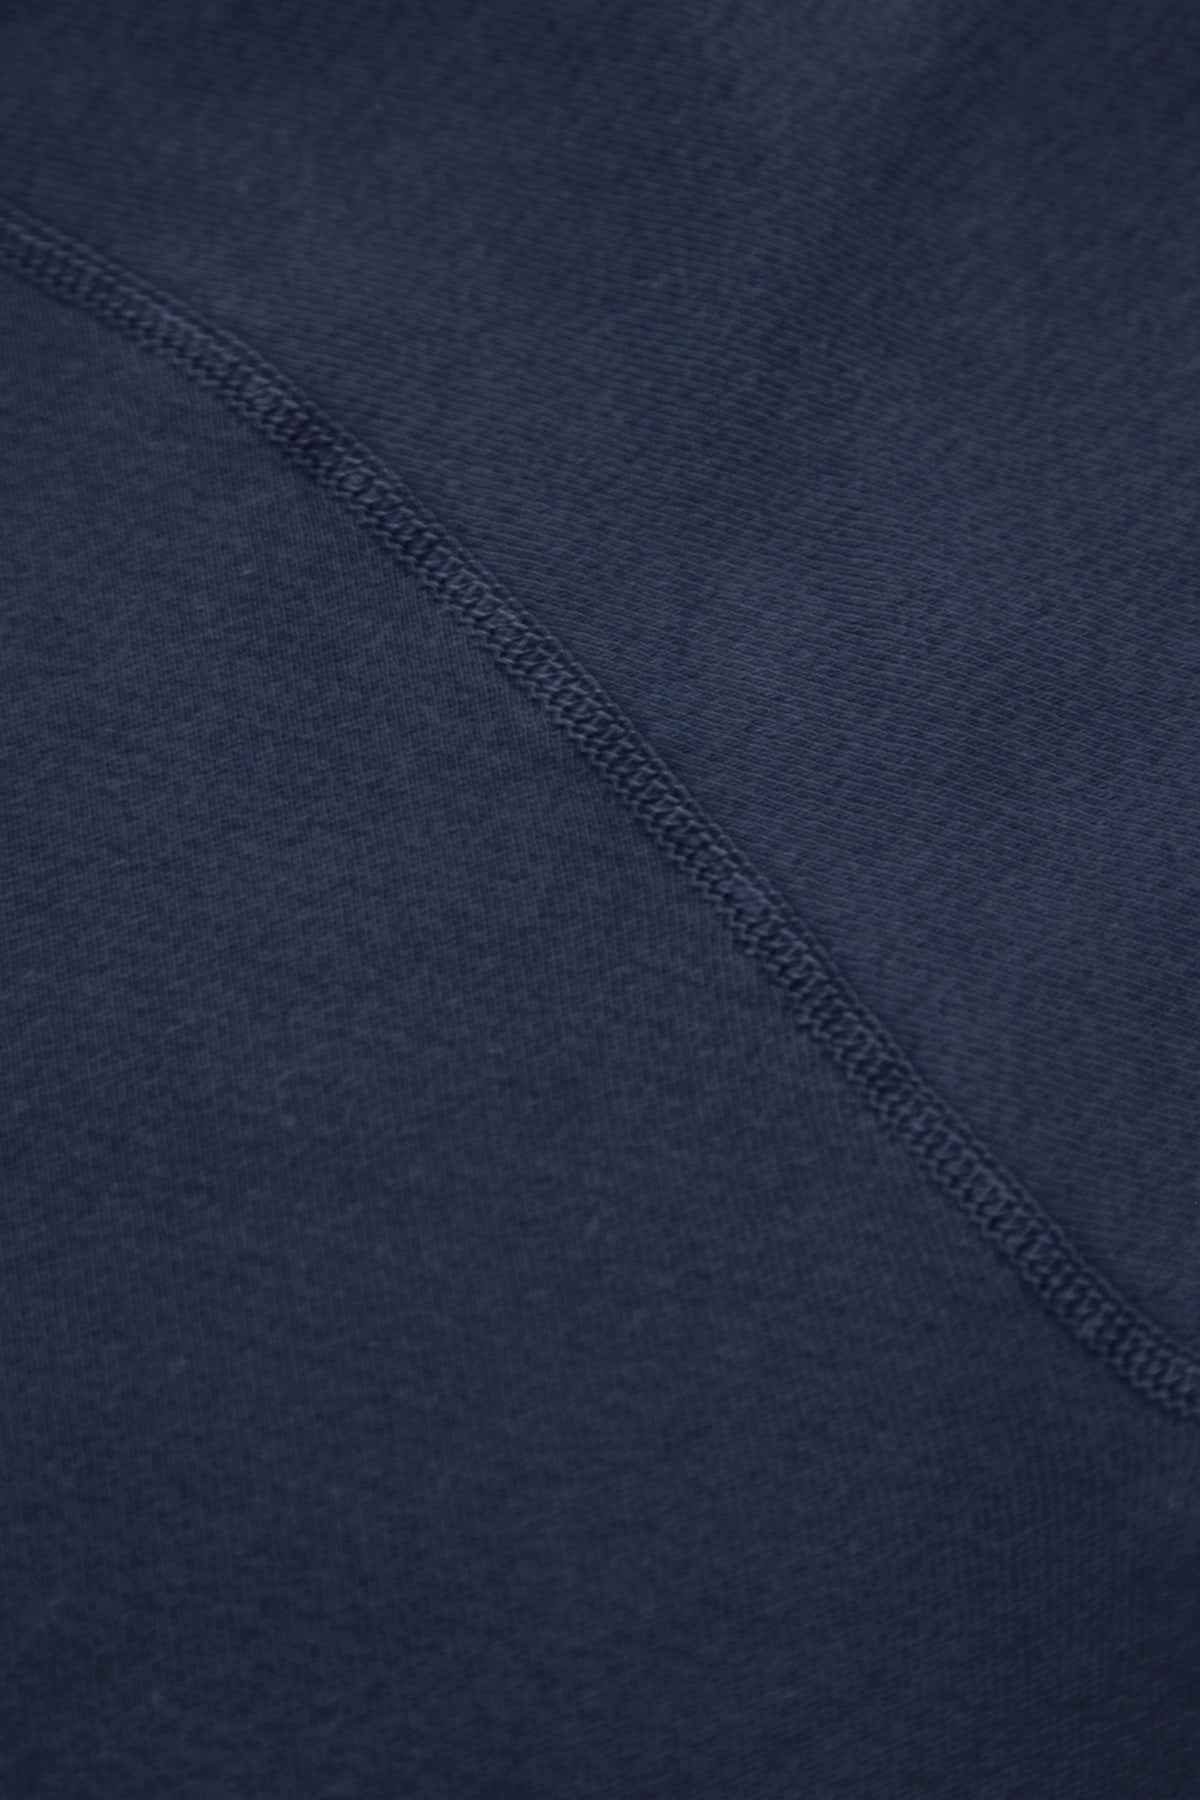 Velva Sheen - 8oz Pigment Freedom Sweatshirt - Navy - Canoe Club